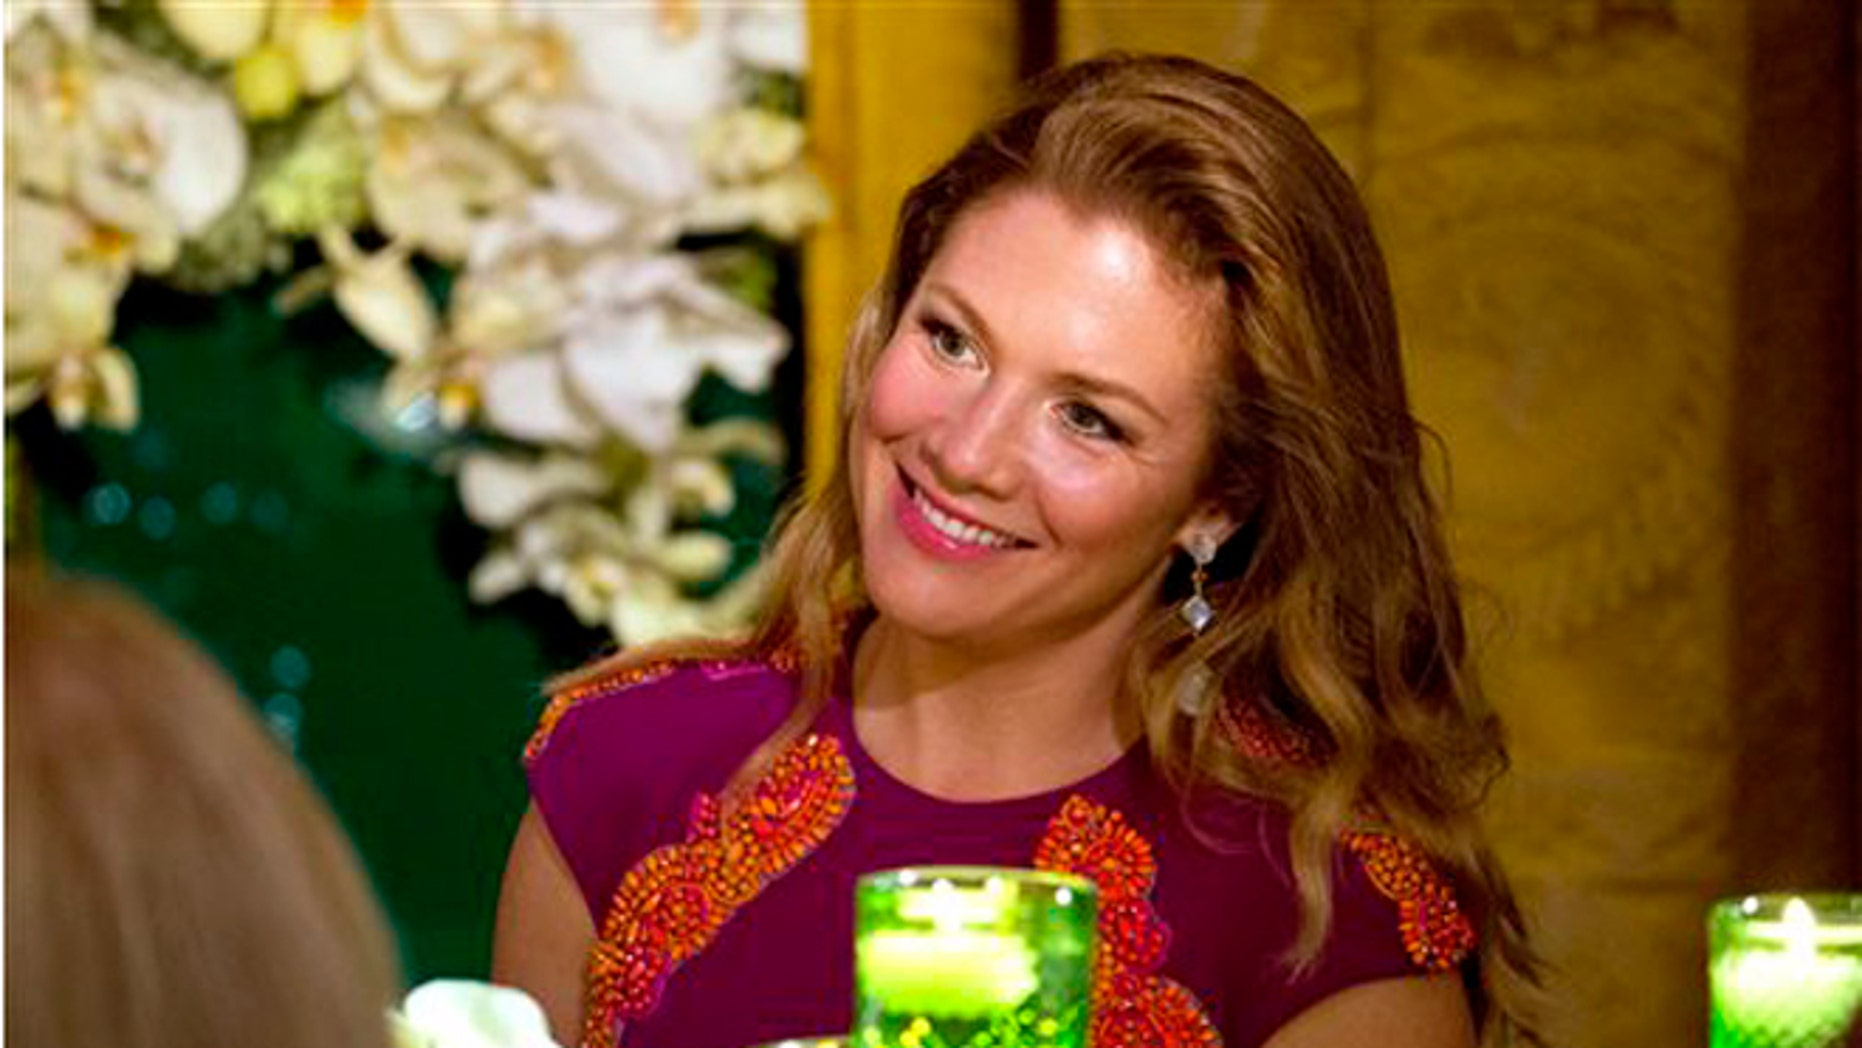 In this March 10, 2016, file photo, Sophie Gregoire Trudeau listens to President Barack Obama toast her husband, Canadian Prime Minister Justin Trudeau, during a State Dinner in the East Room of the White House in Washington.